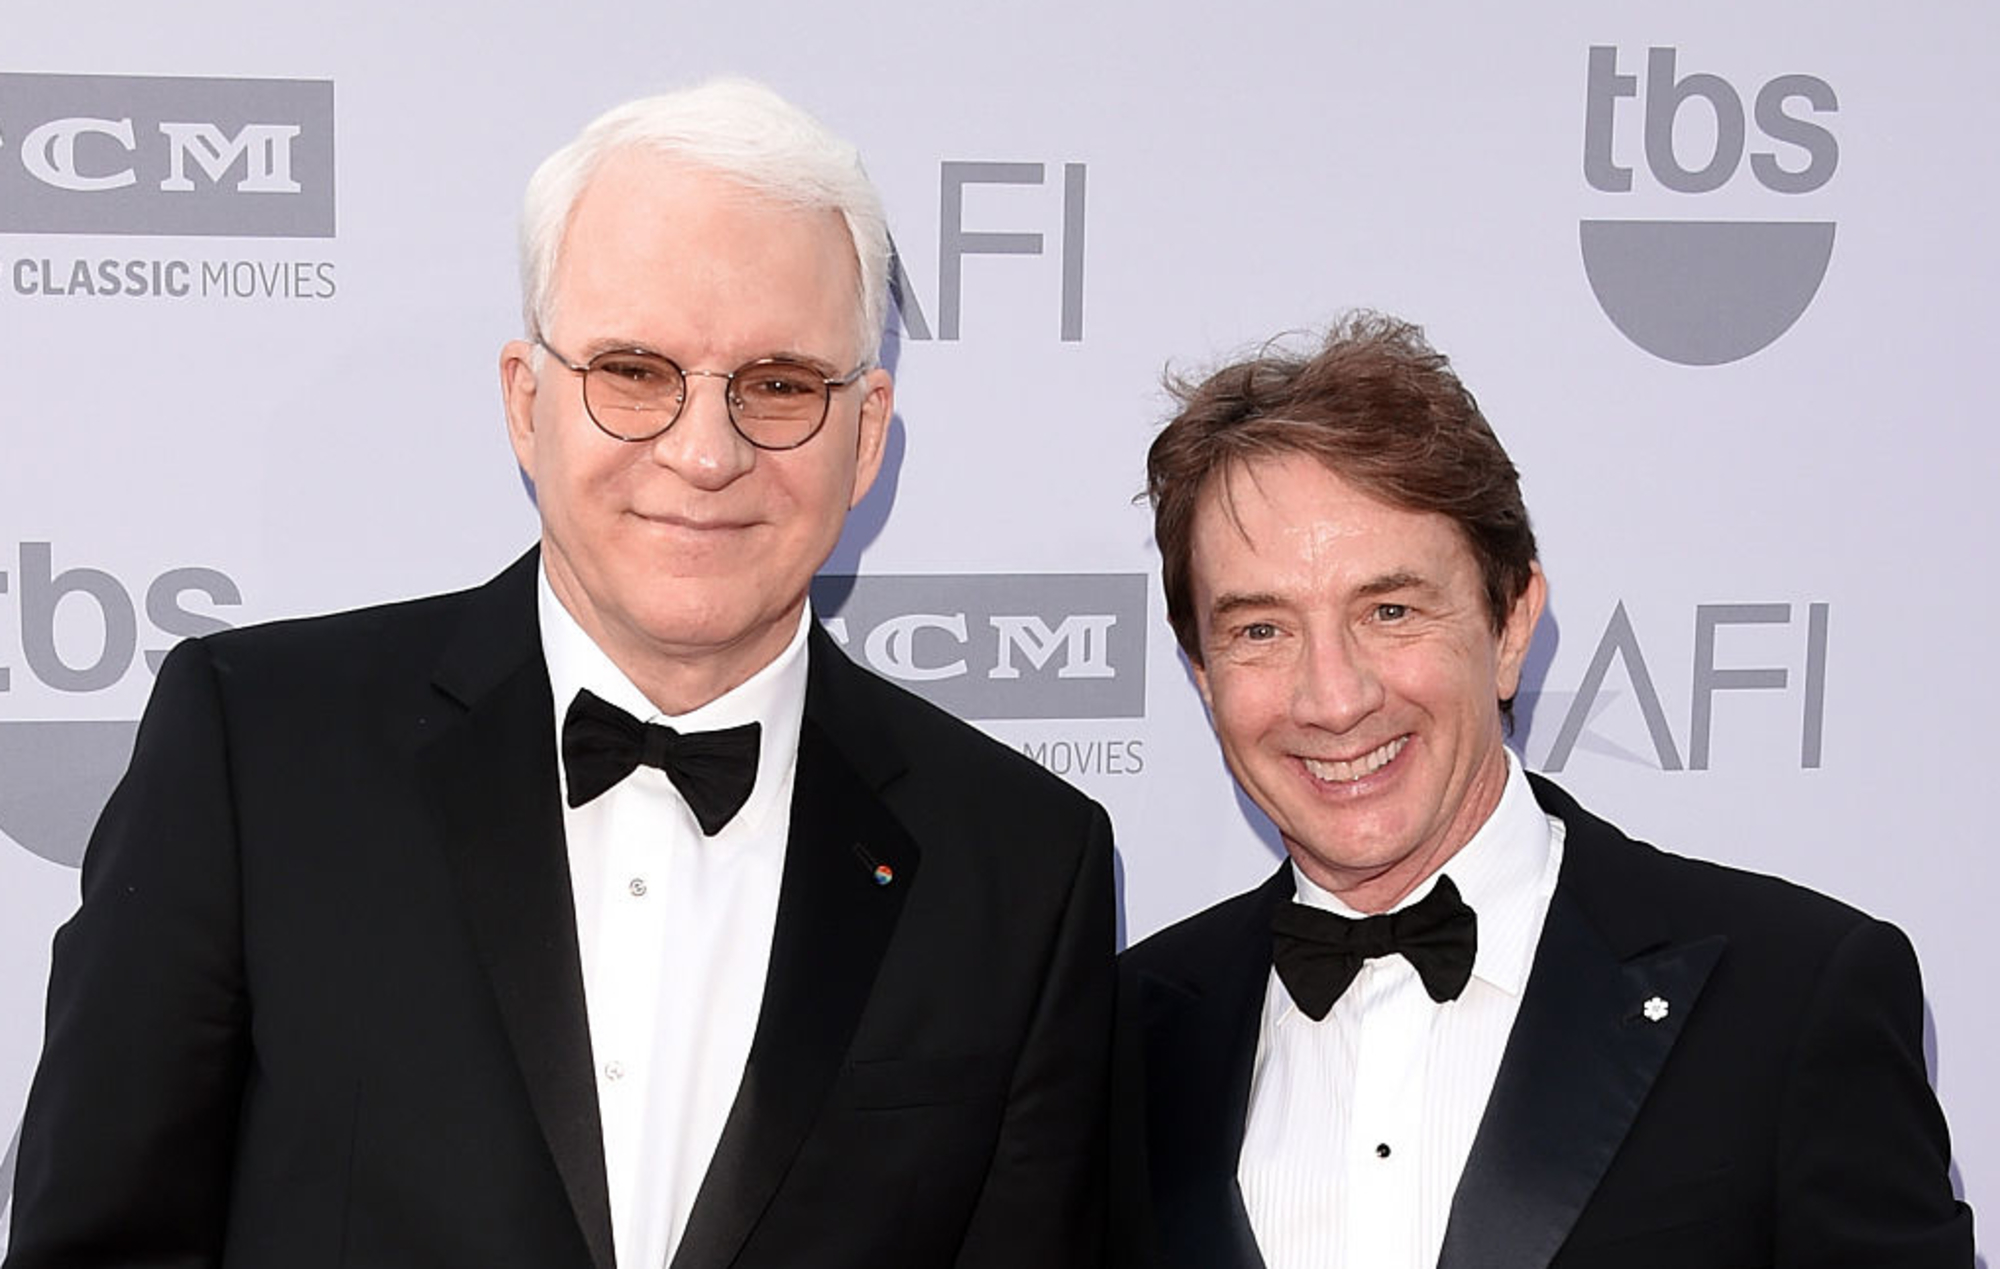 Steve Martin and Martin Short to reunite on screen for new Hulu comedy series